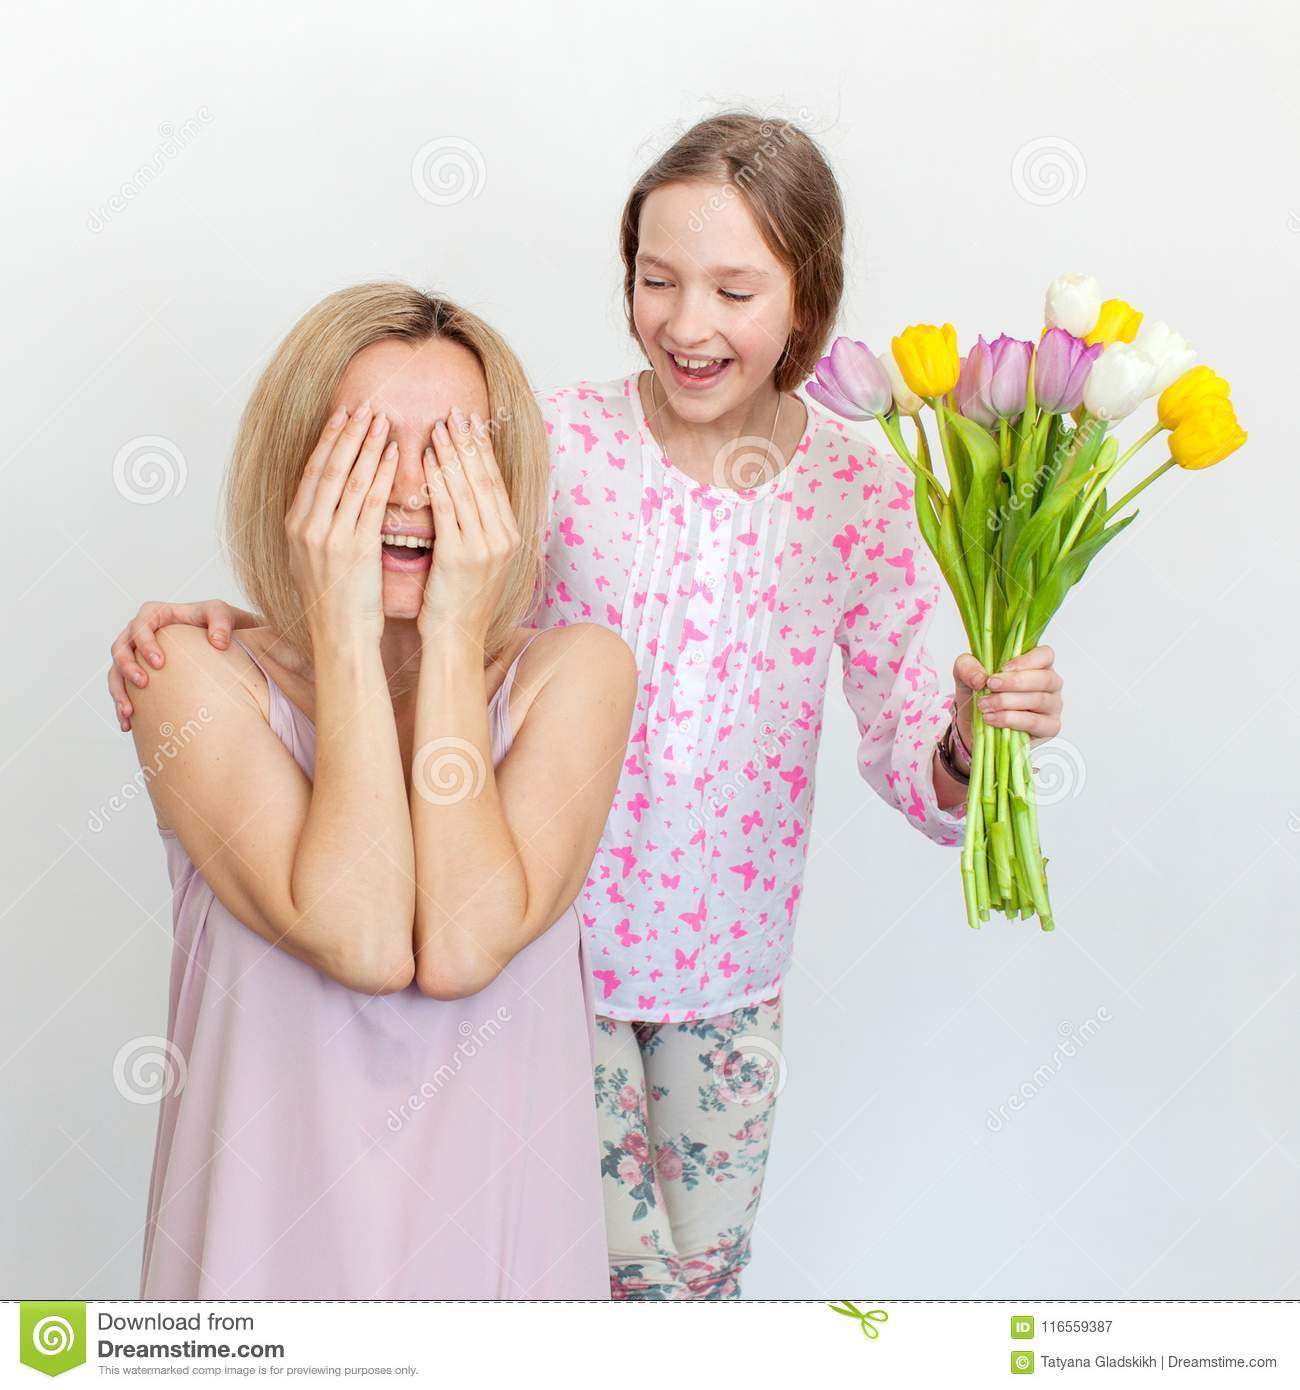 It's okay to give mother only flowers for your birthday 72